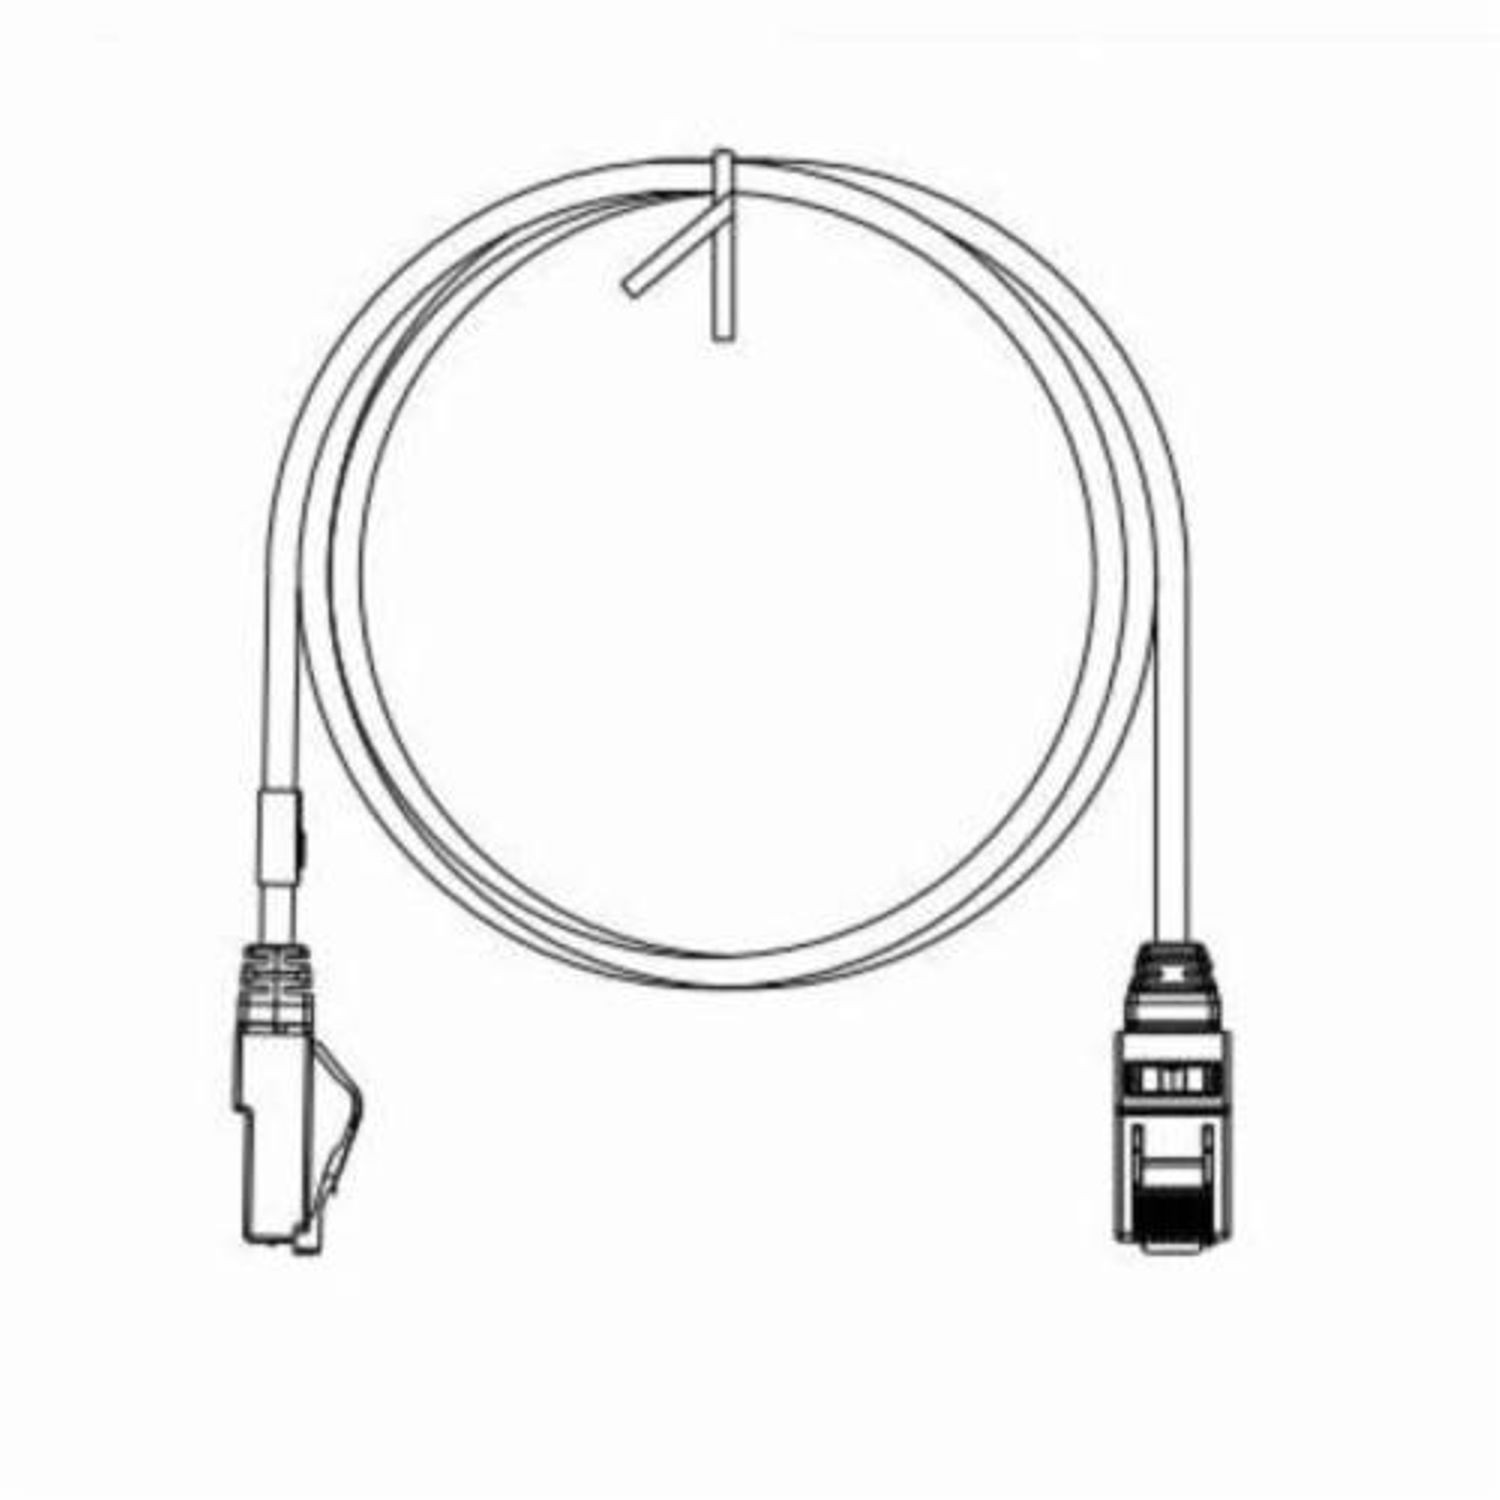 Panduit Pannet Tx6 Plus Utpsp2buy U Utp Patch Cord Cat 6 Awg Rj45 Connector Wiring Category 24 Stranded Copper Conductor 2 Ft L